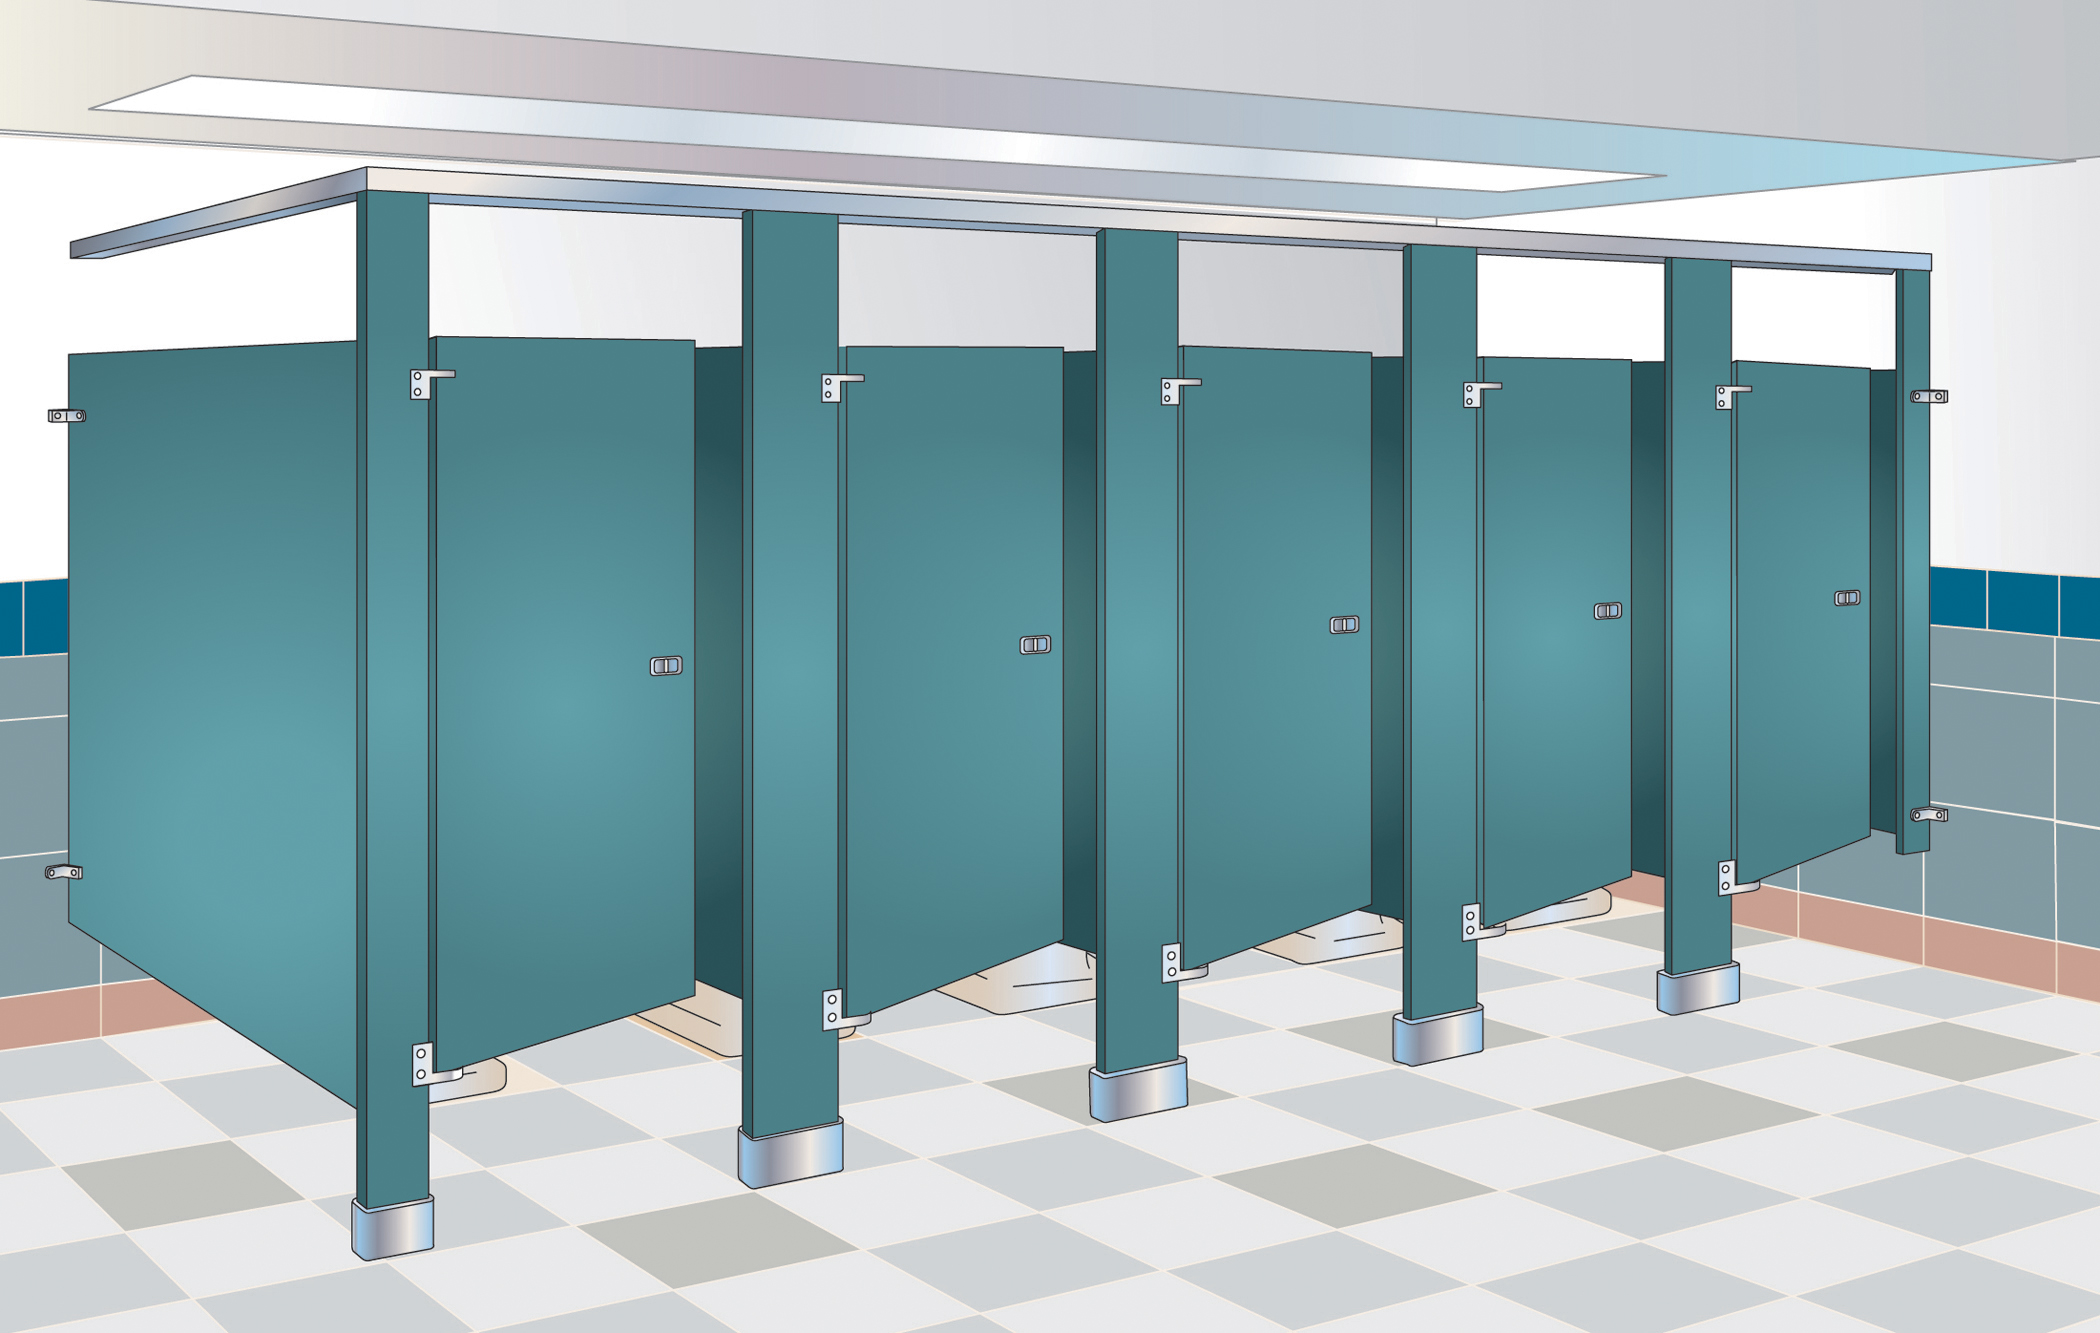 Bathroom Stalls Cad bradmar partitions - bradley corporation